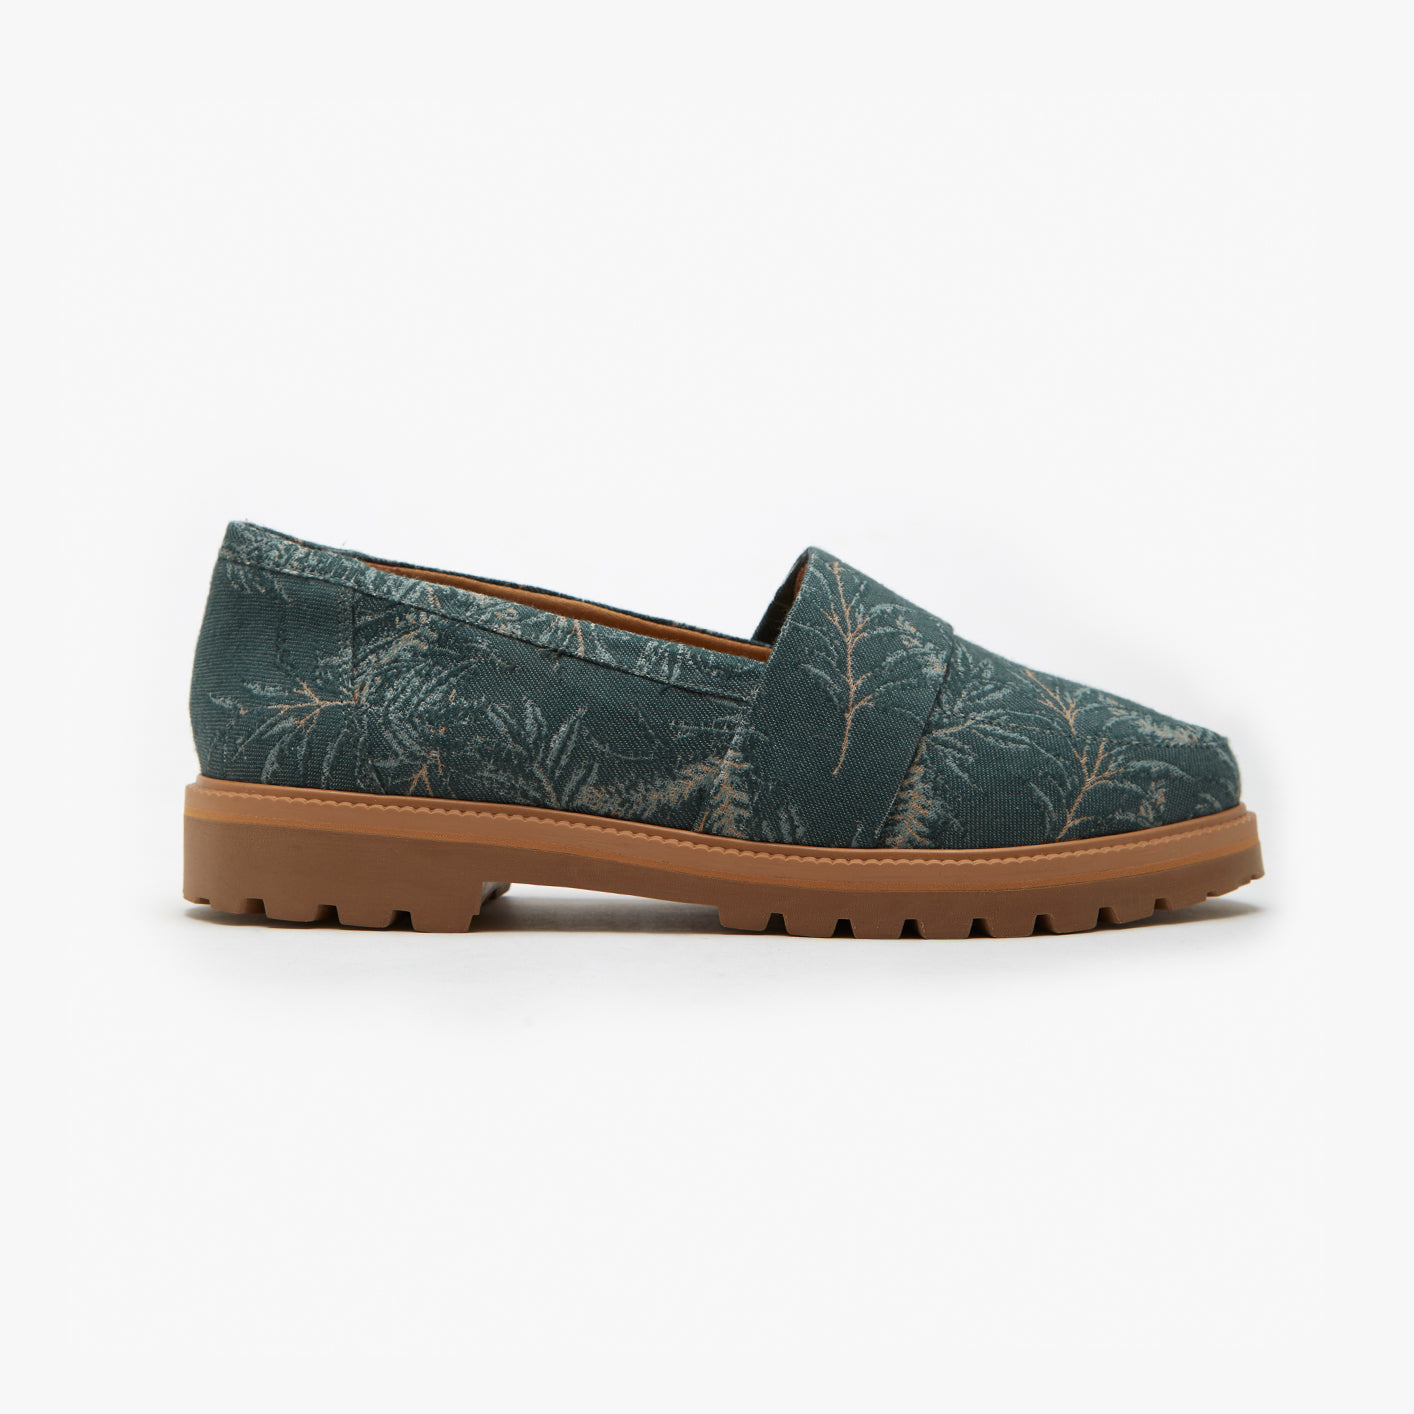 AROEIRA LOAFER - Insecta Shoes Brasil